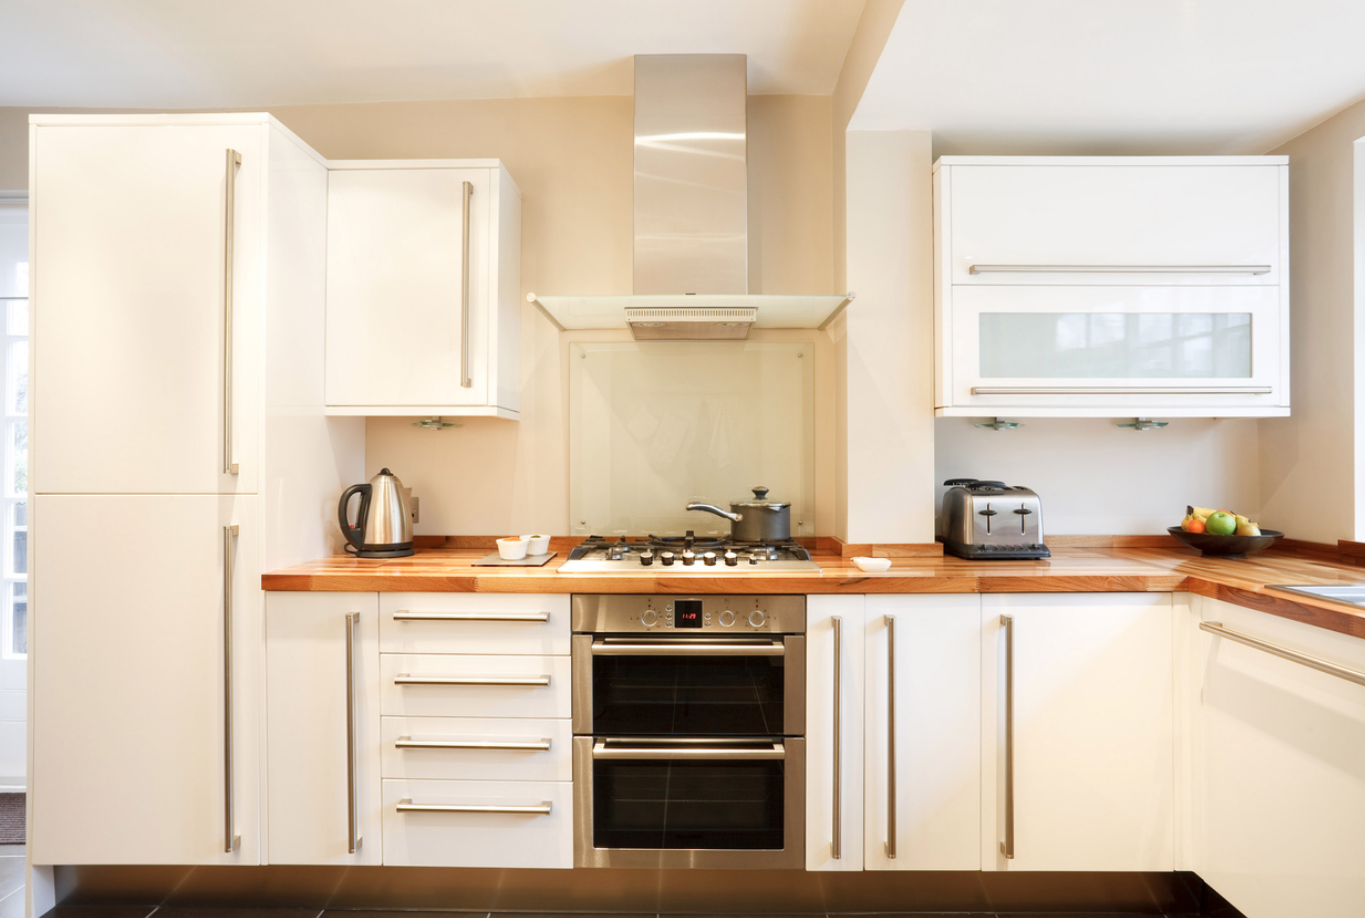 How Much Should It Cost To Replace Kitchen Cabinets?